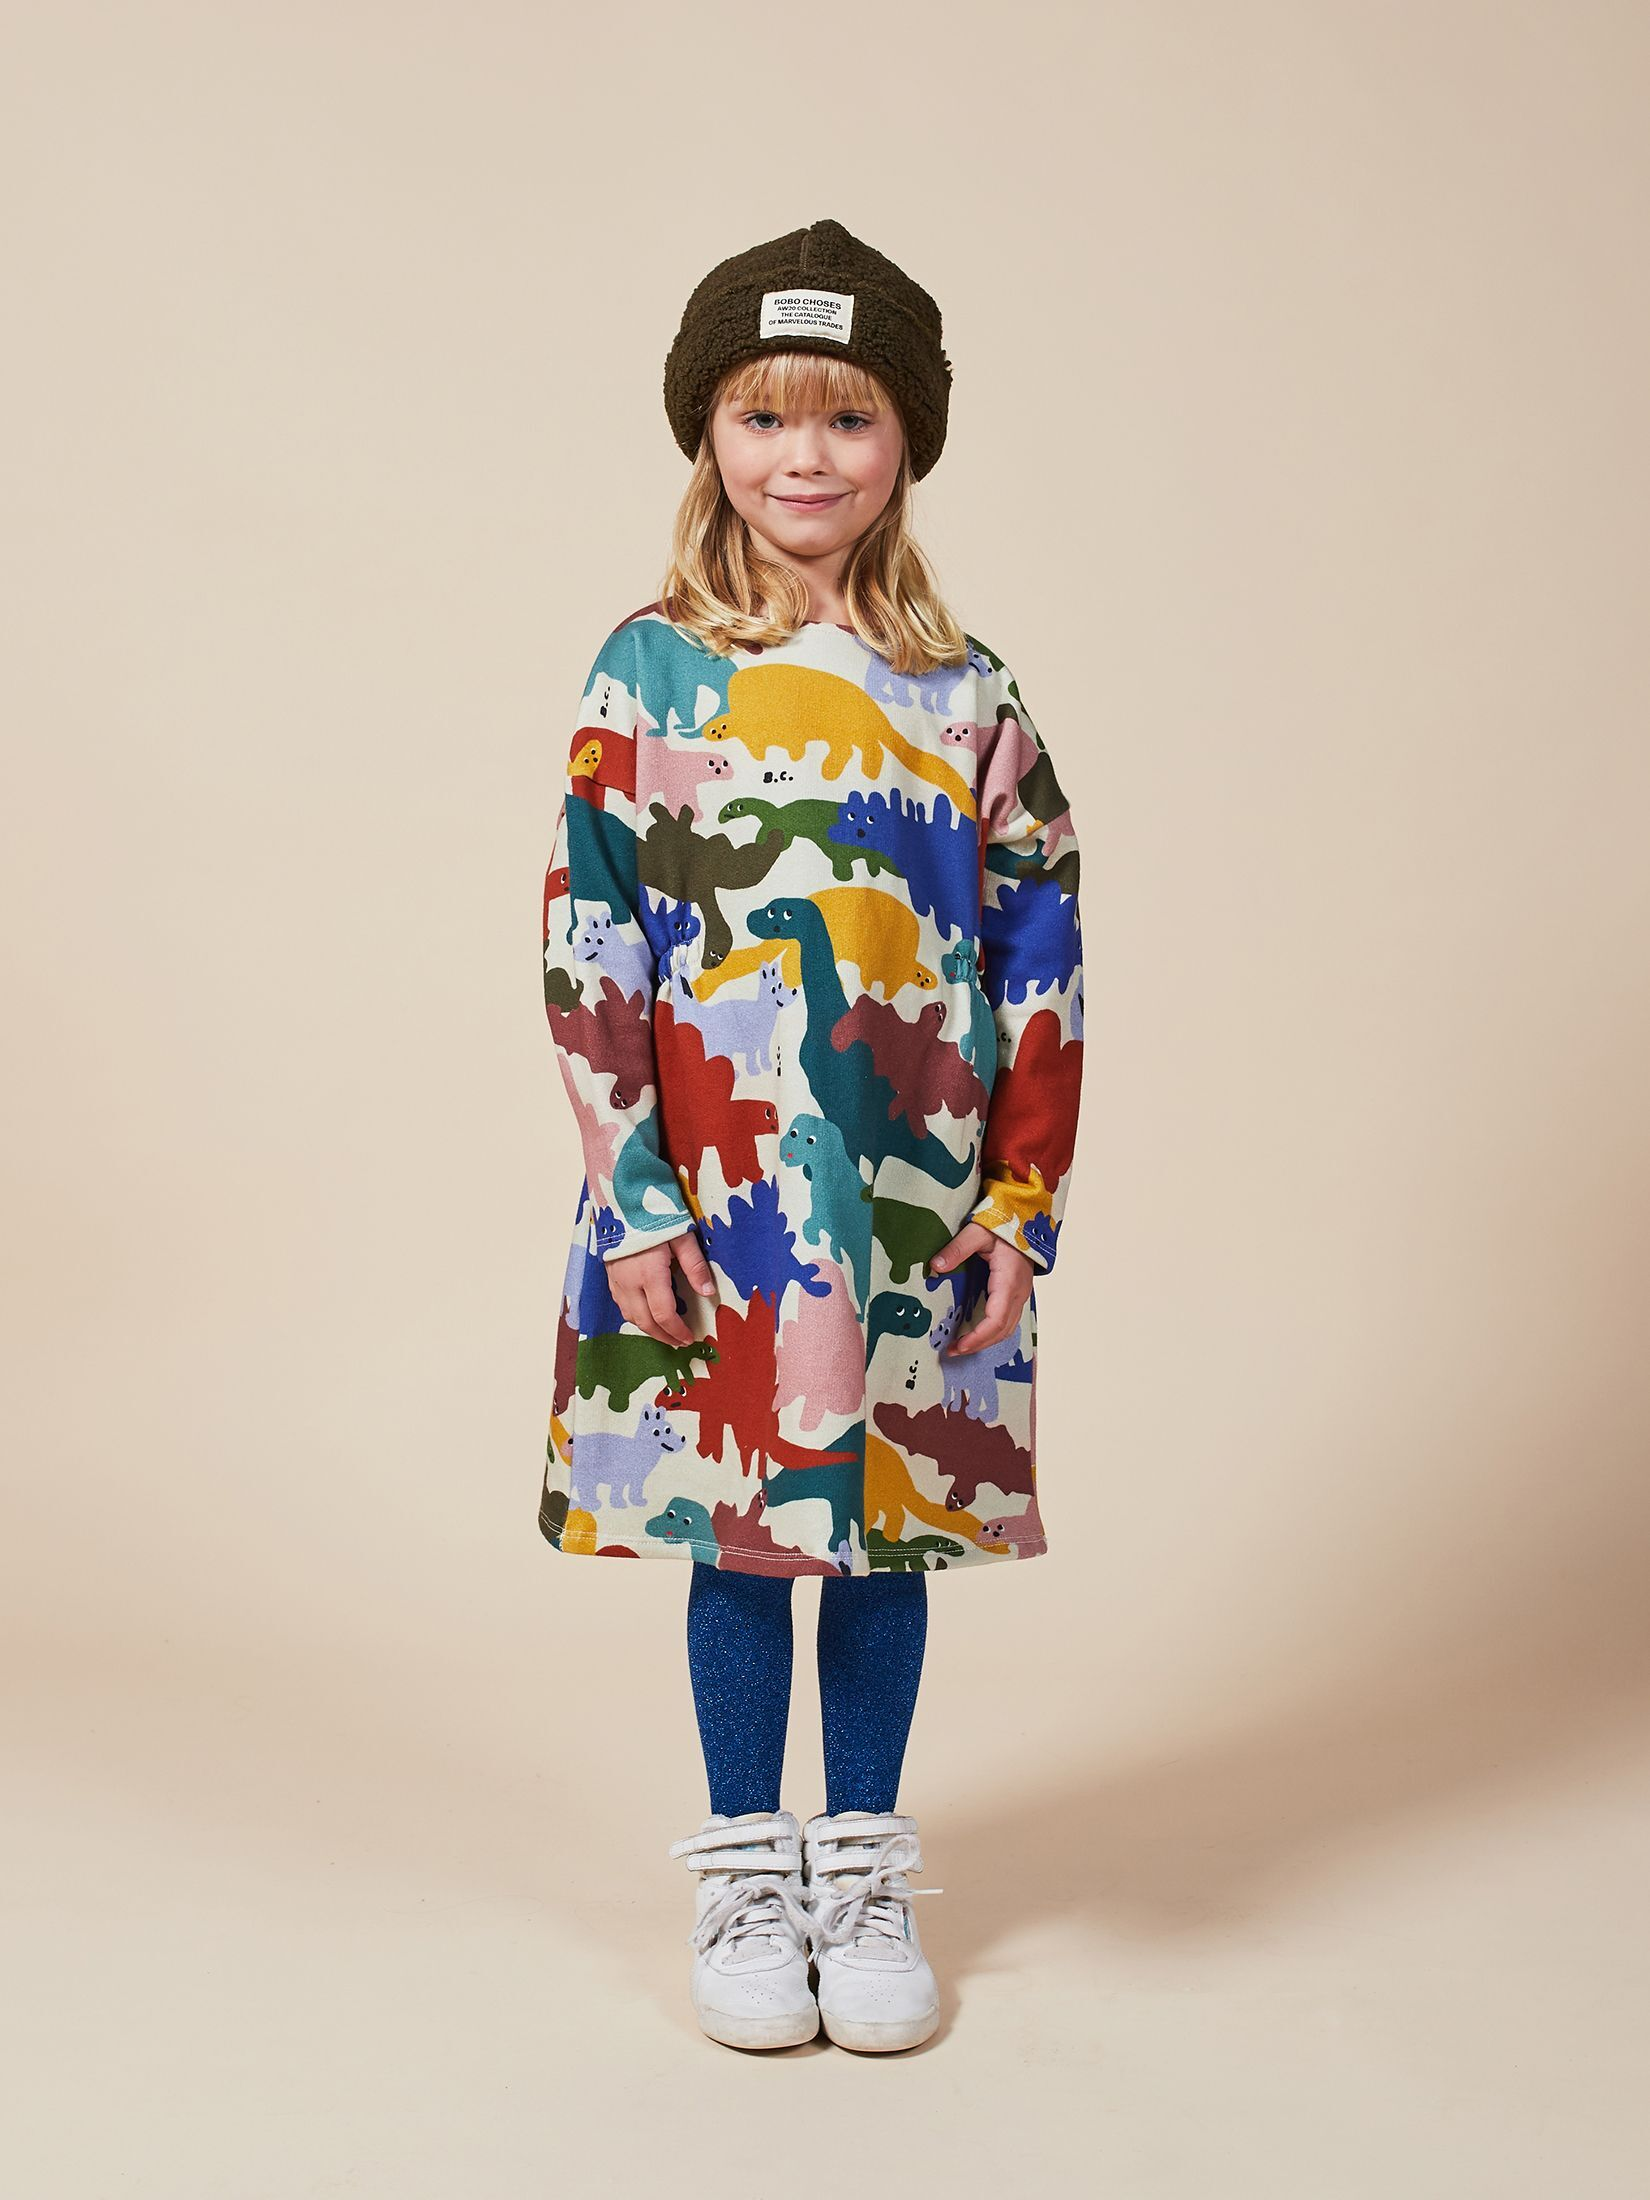 BOBO CHOSES ボボショセス Dinos All Over Fleece Dress size:2-3Y(100)~8-9Y(130)